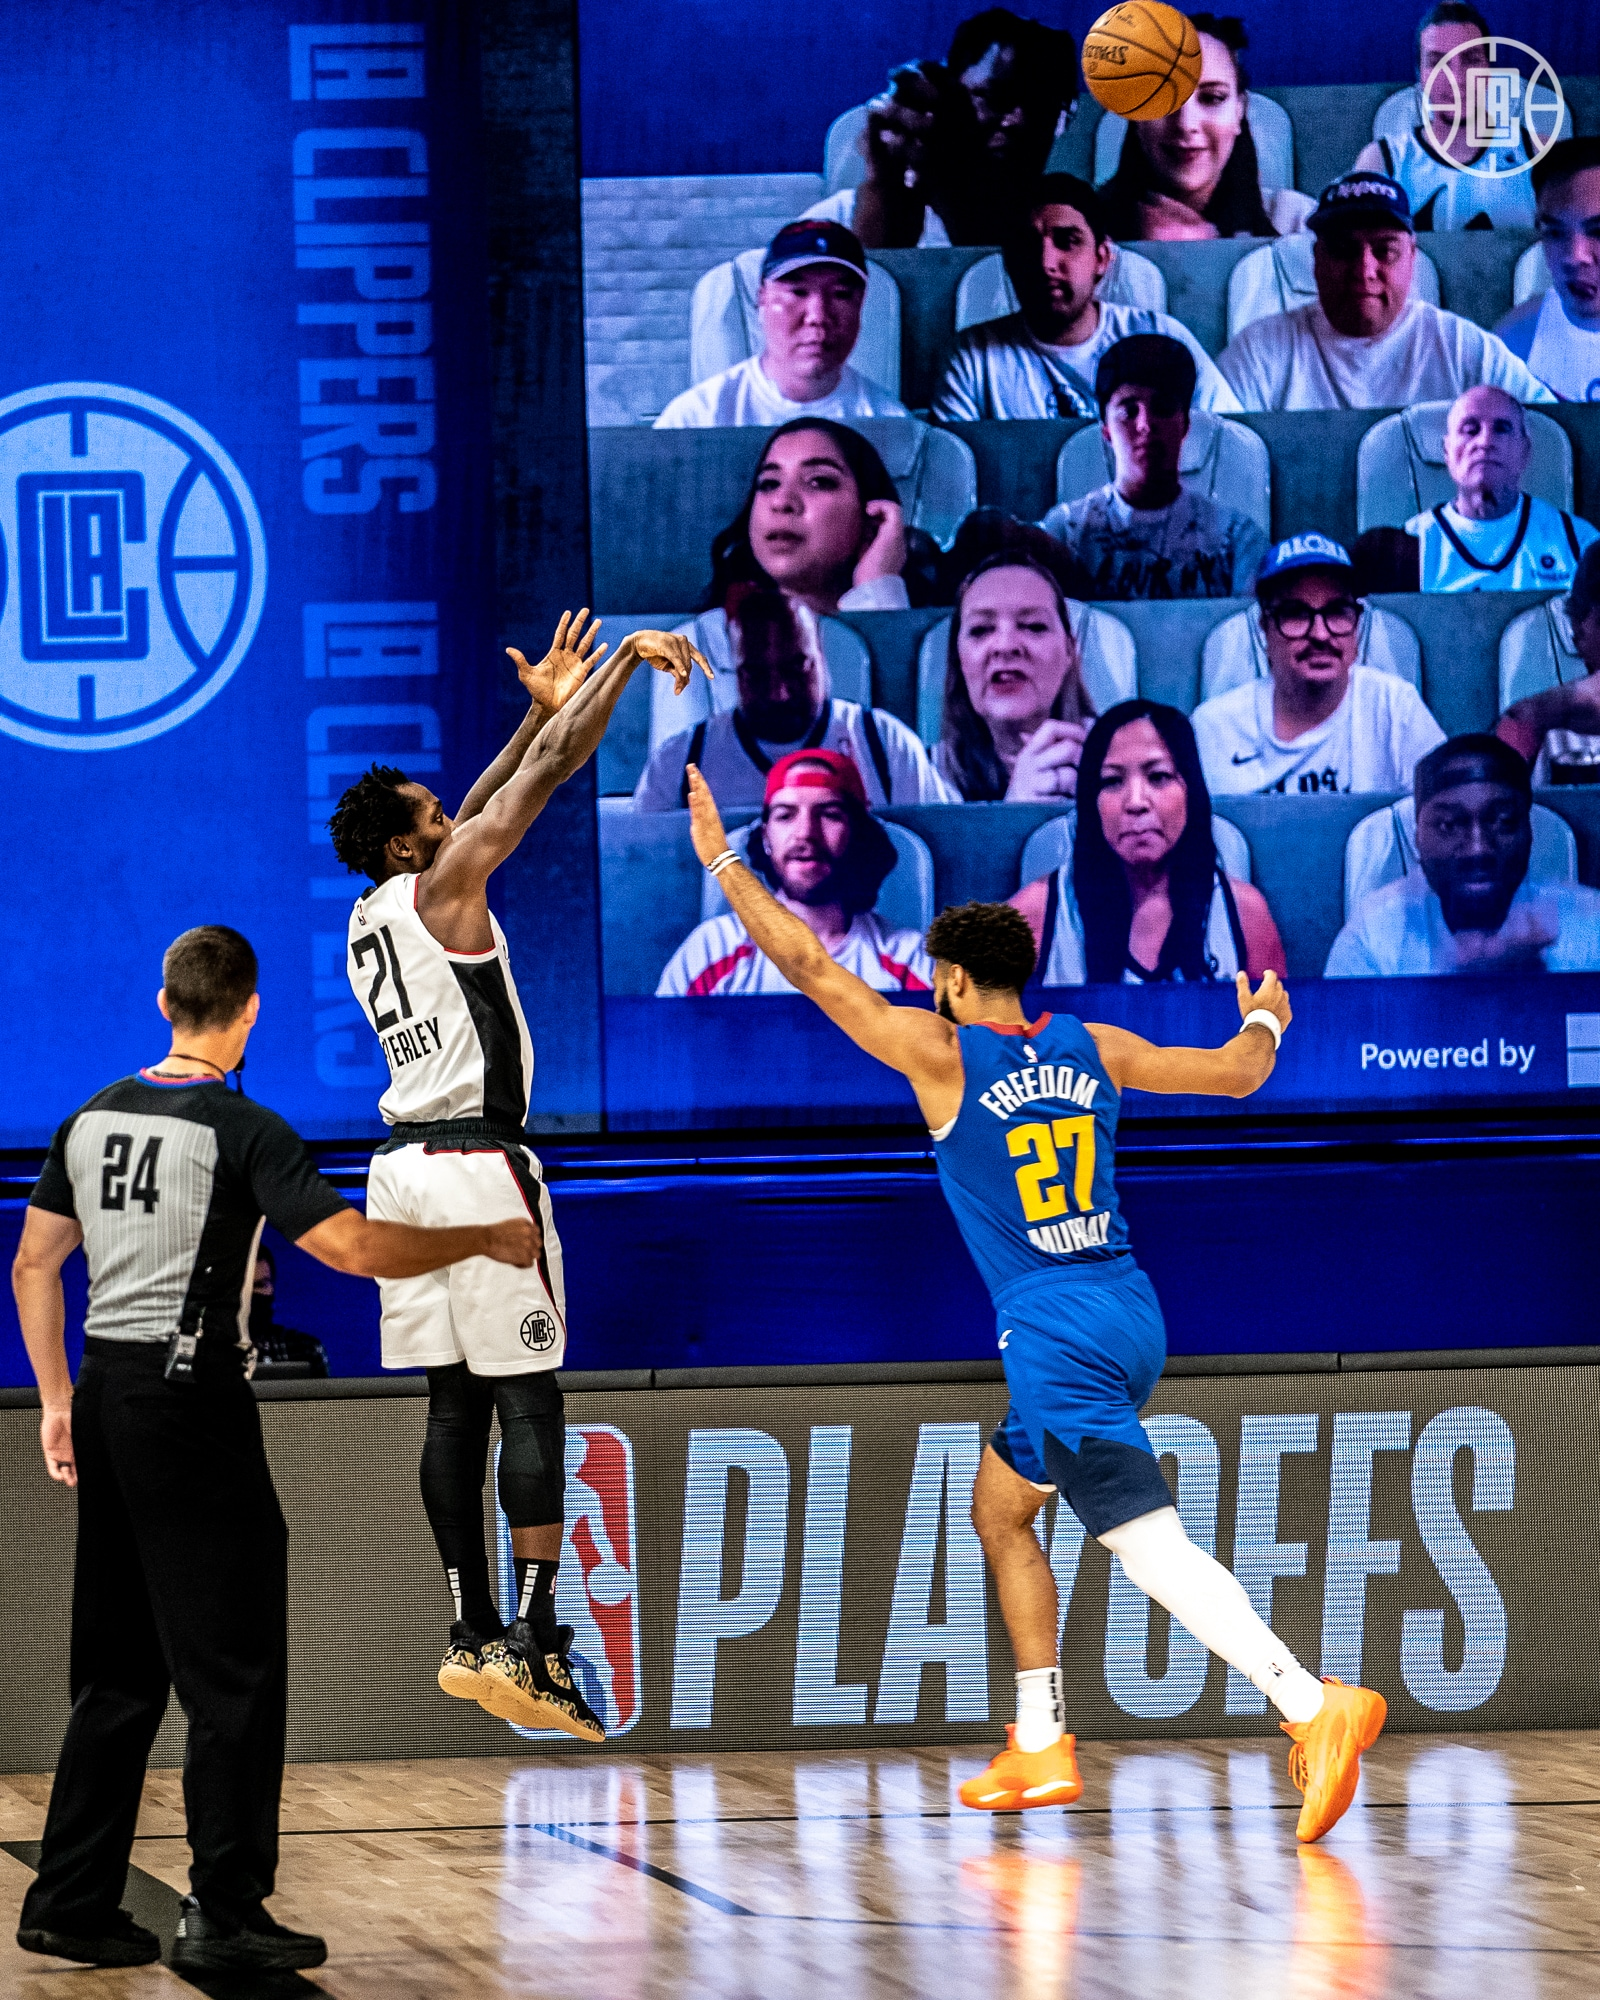 Gallery Clippers Vs Nuggets Game 5 09 11 20 Los Angeles Clippers